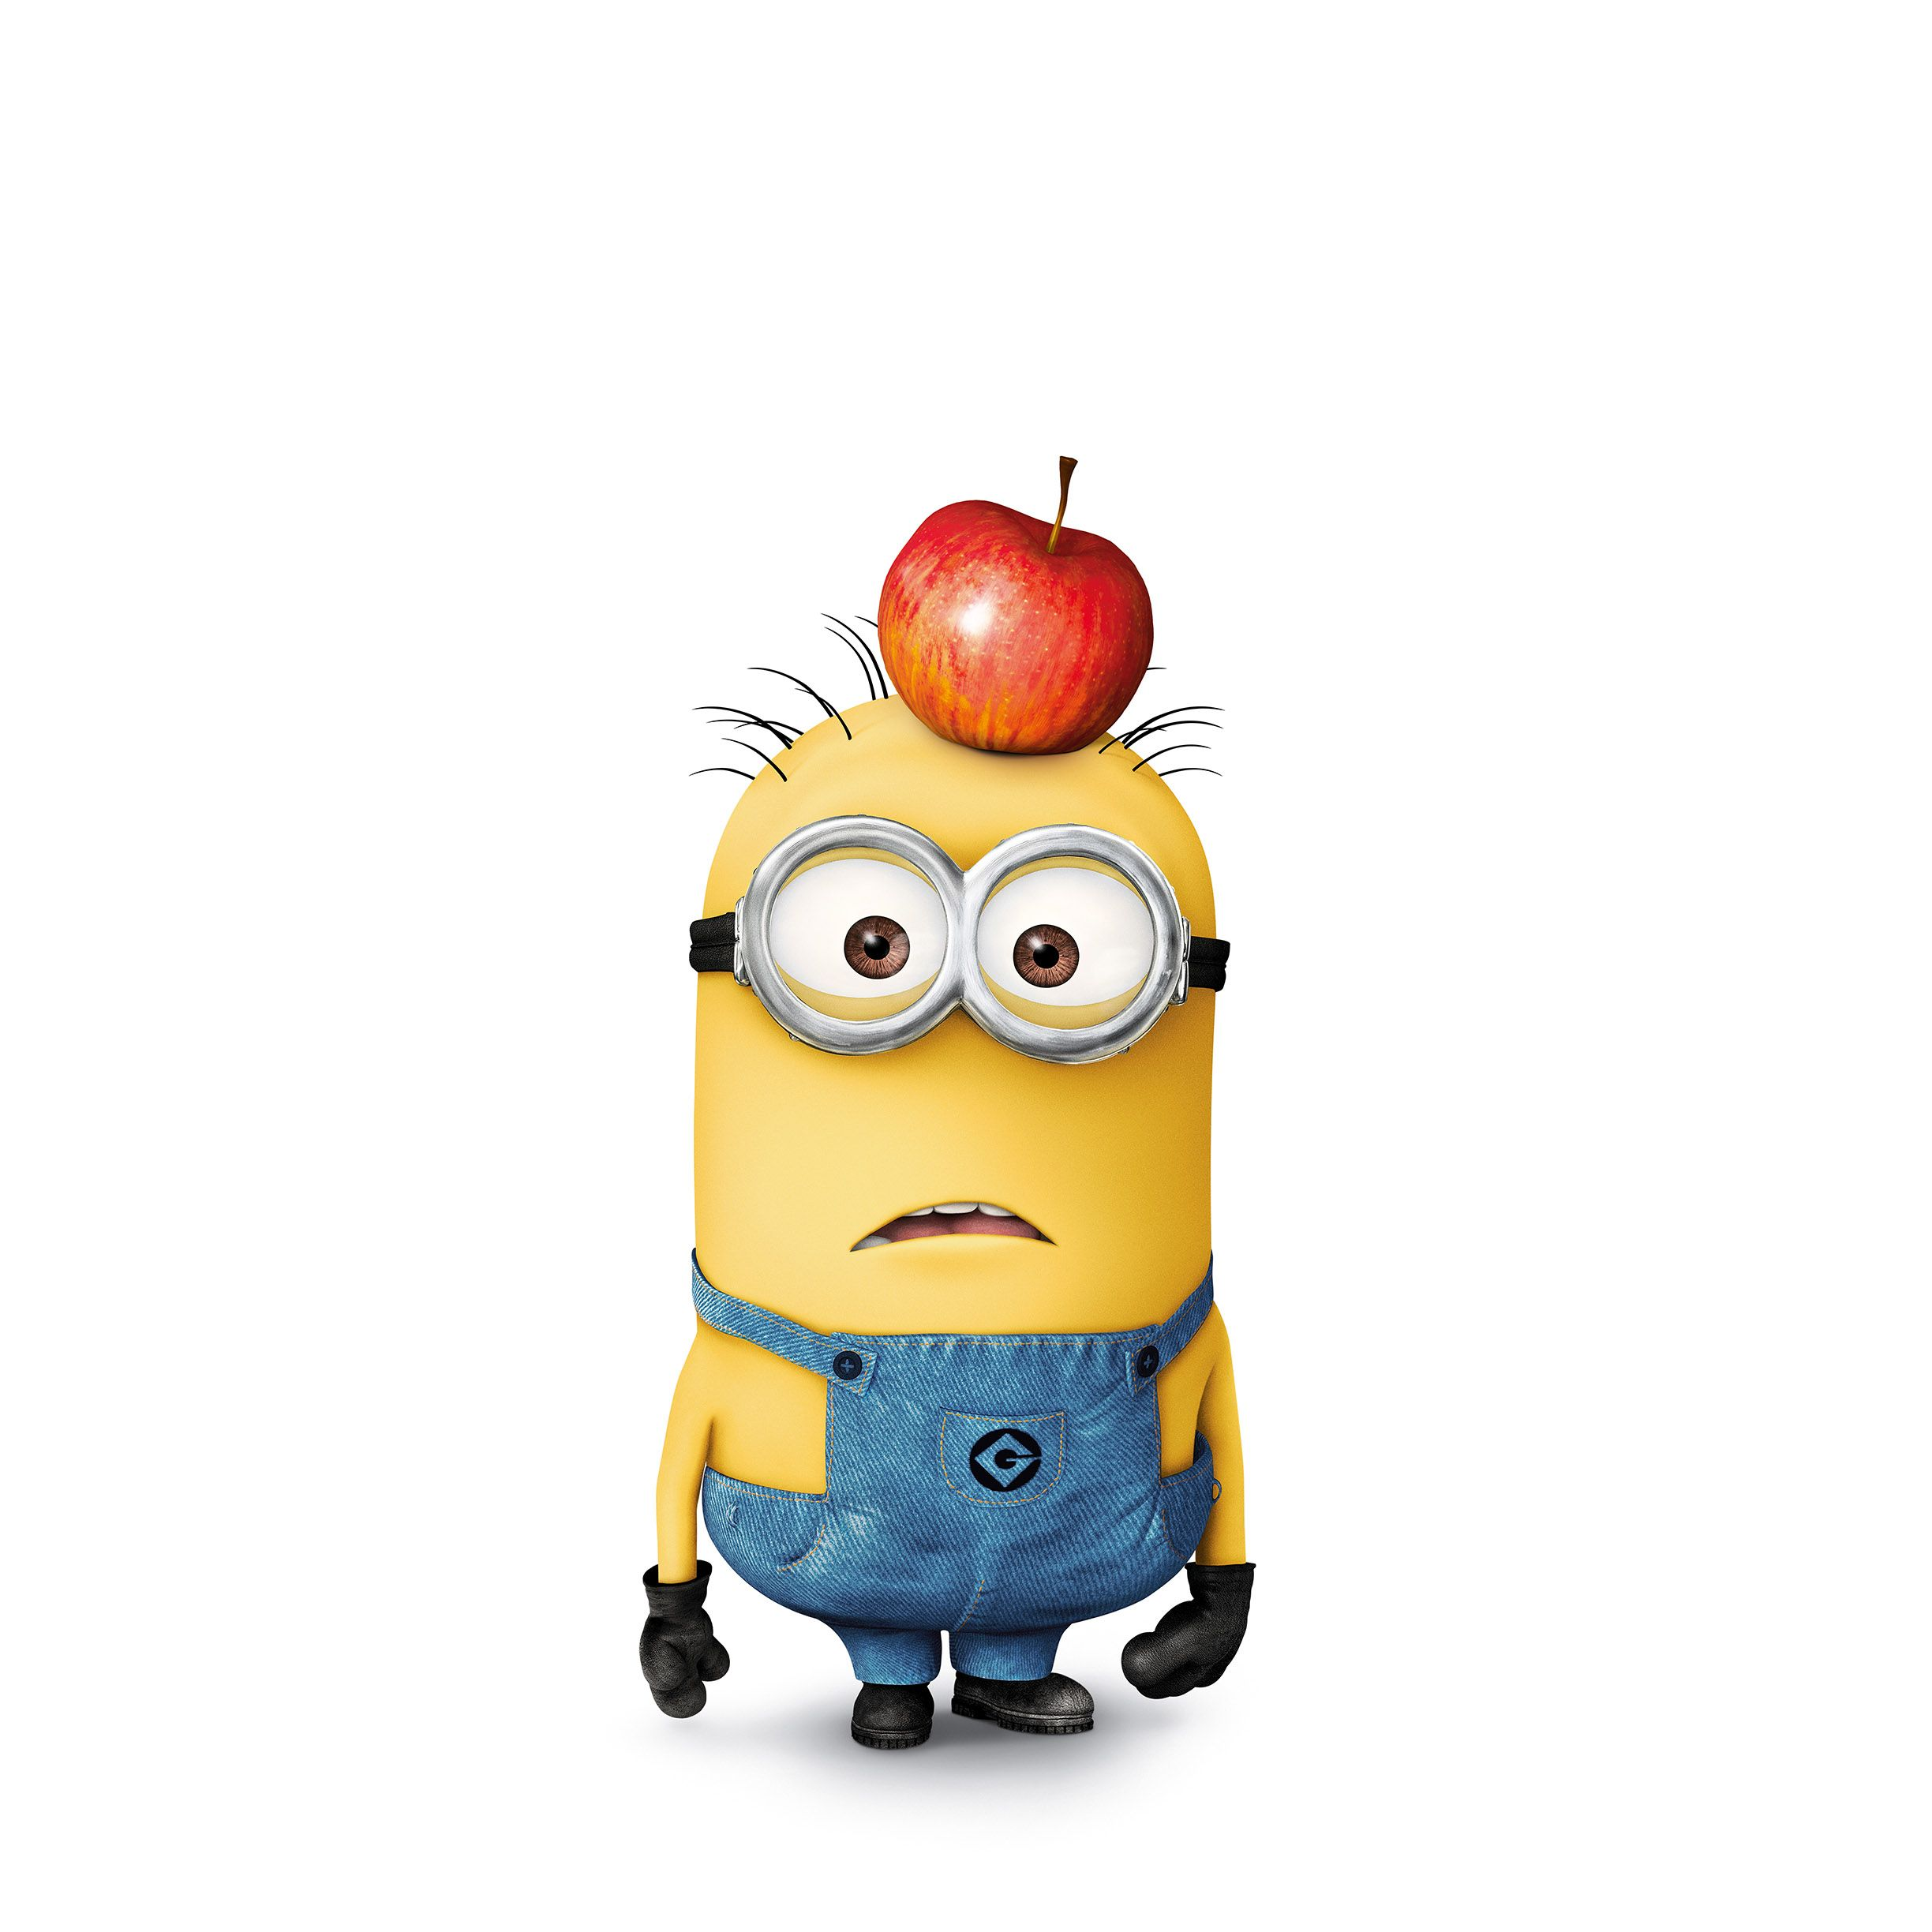 Minions Wallpaper For iPhone Despicable Me movie